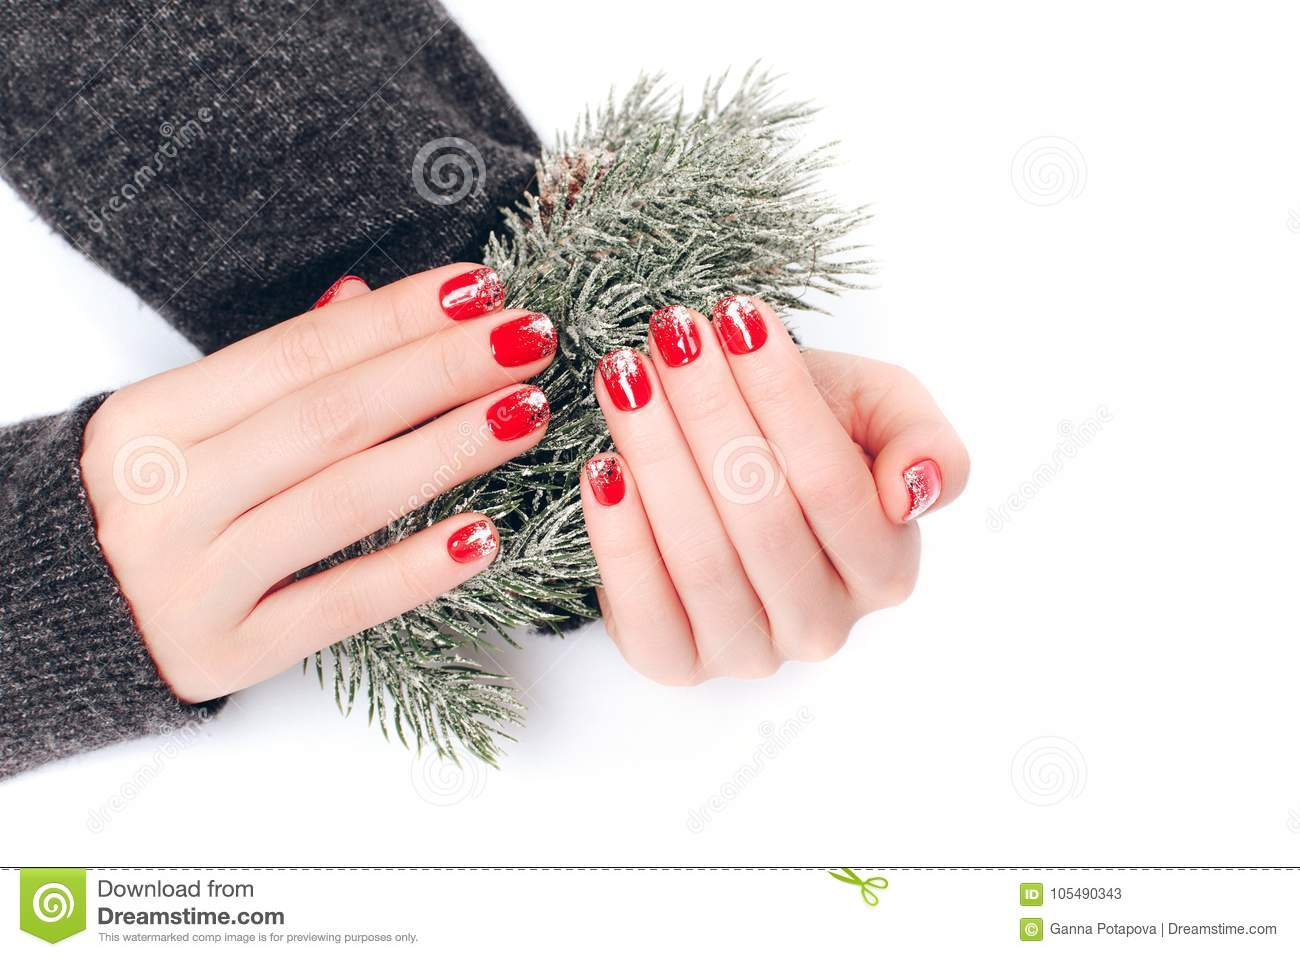 Beatiful Christmas manicure